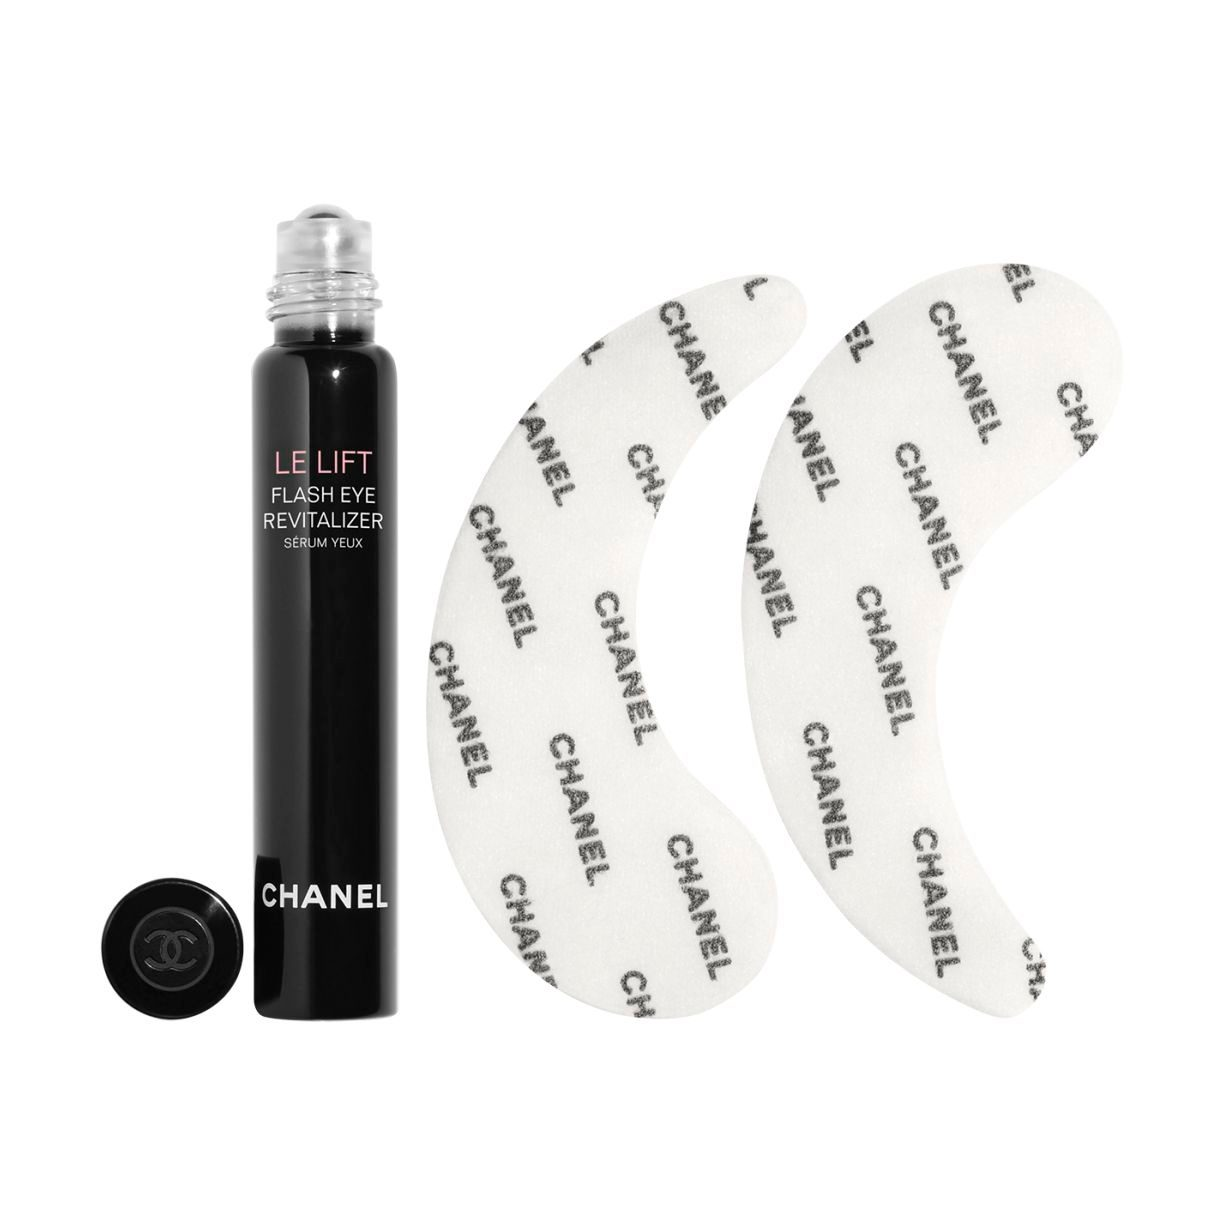 LE LIFT RASSODANTE - ANTIRUGHE FLASH EYE REVITALIZER 1pce